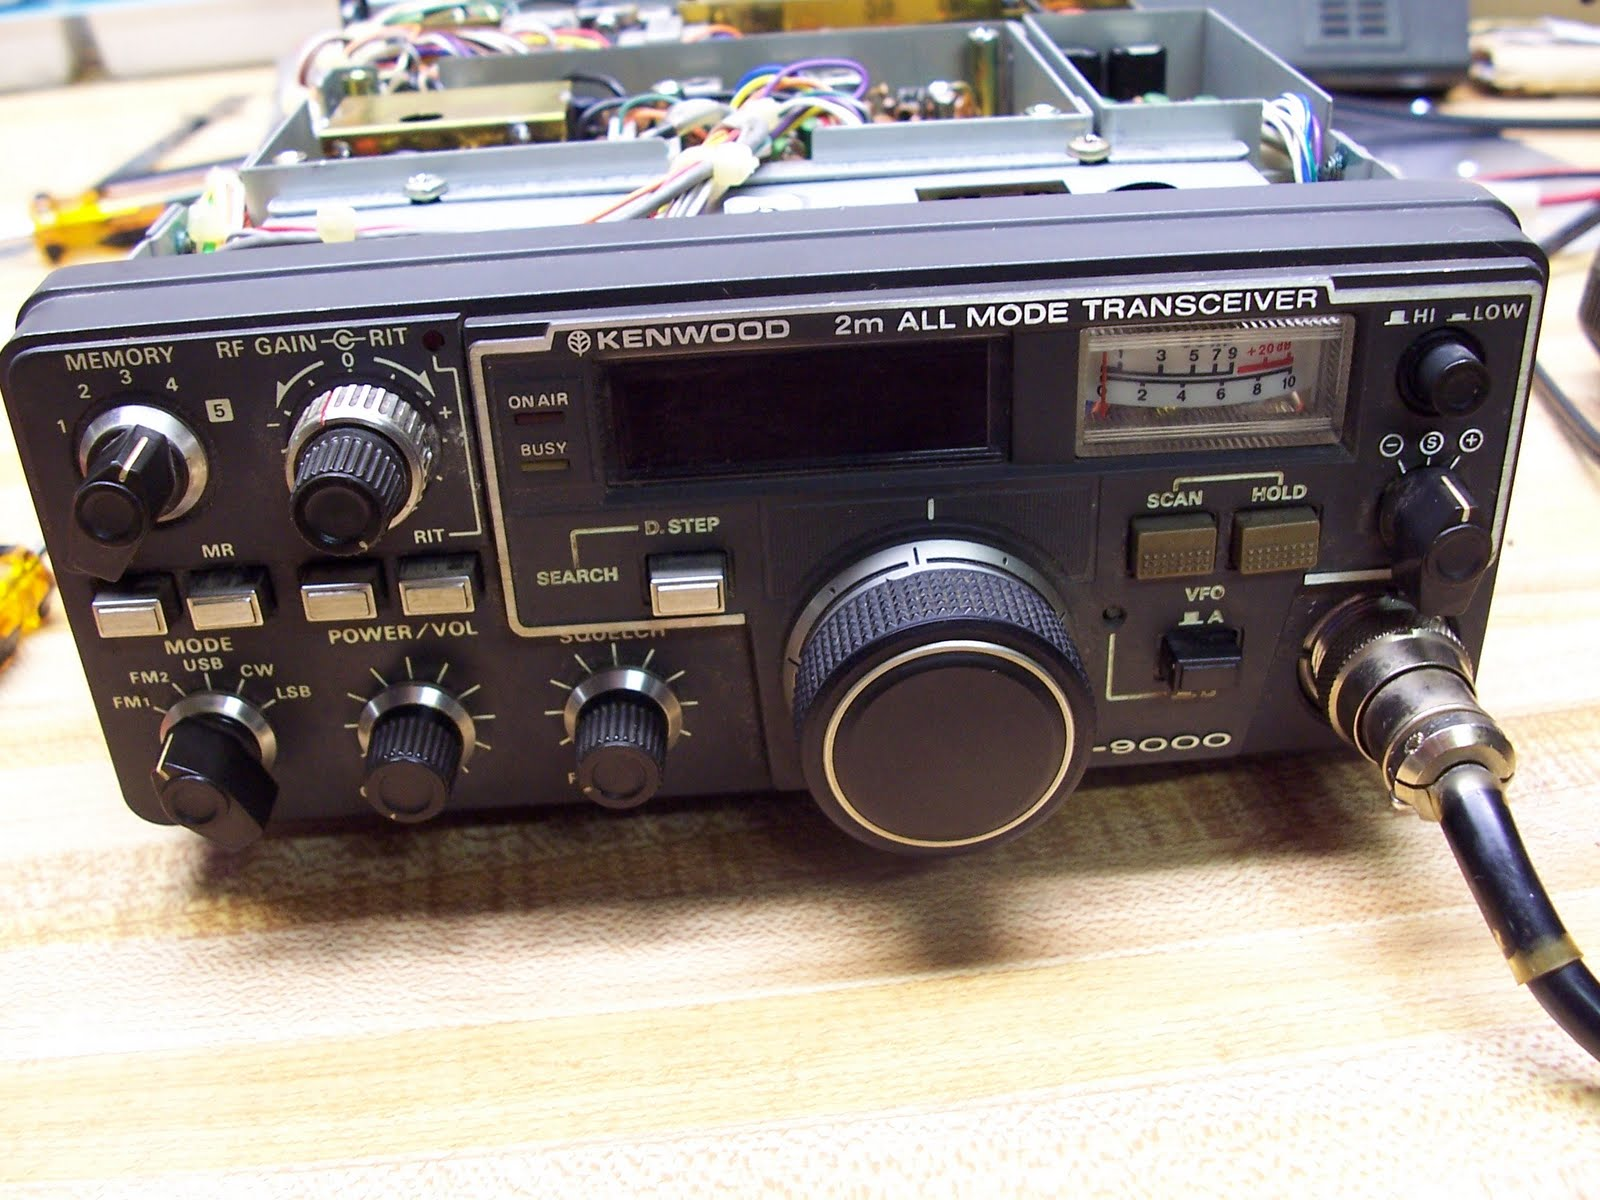 n9xlc kenwood tr 9000 problems rh n9xlc blogspot com Kenwood 2 Meter Radios Kenwood TM 201A